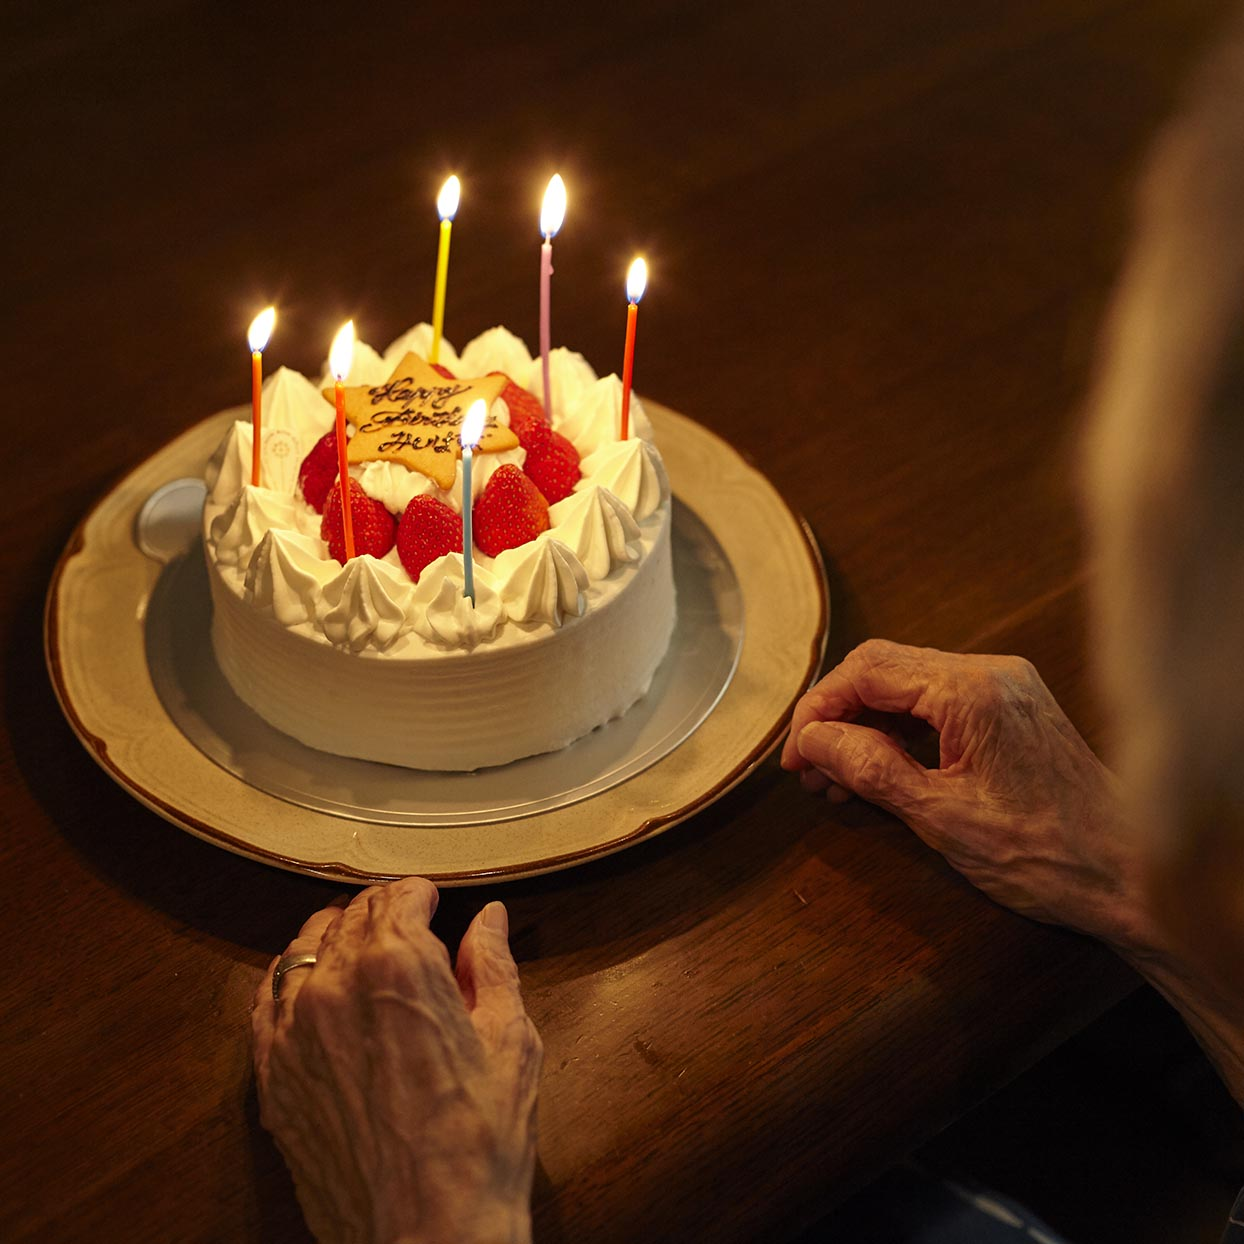 Old woman and cake